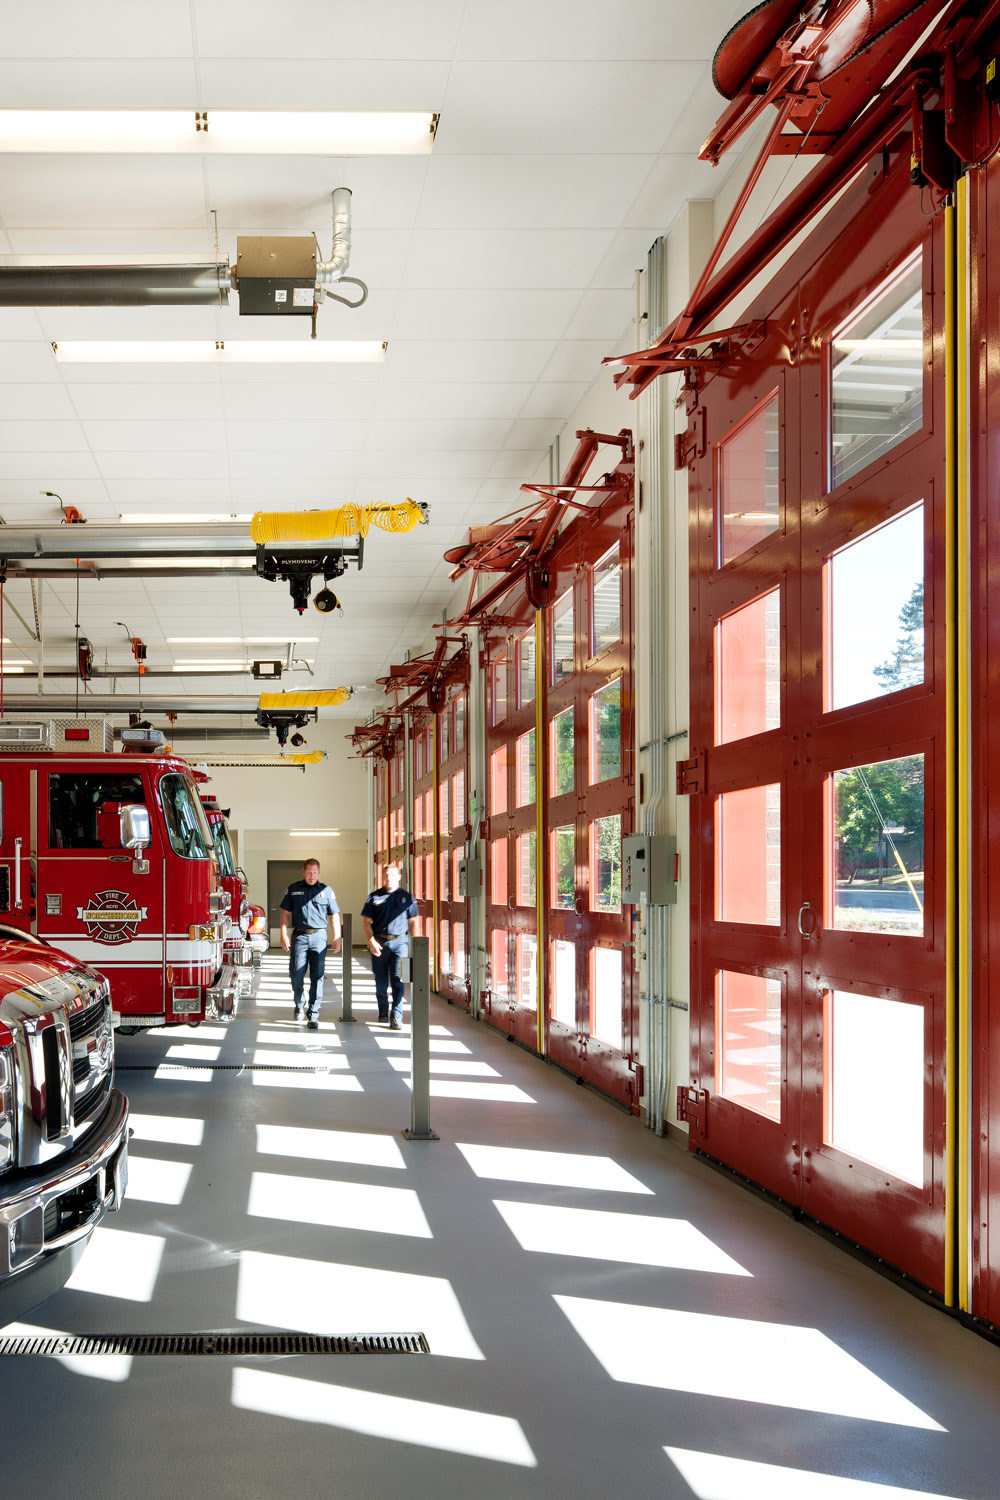 Northshore Fire Station 51 in Kenmore Washington designed by Fire Station Design Expert TCA Architecture